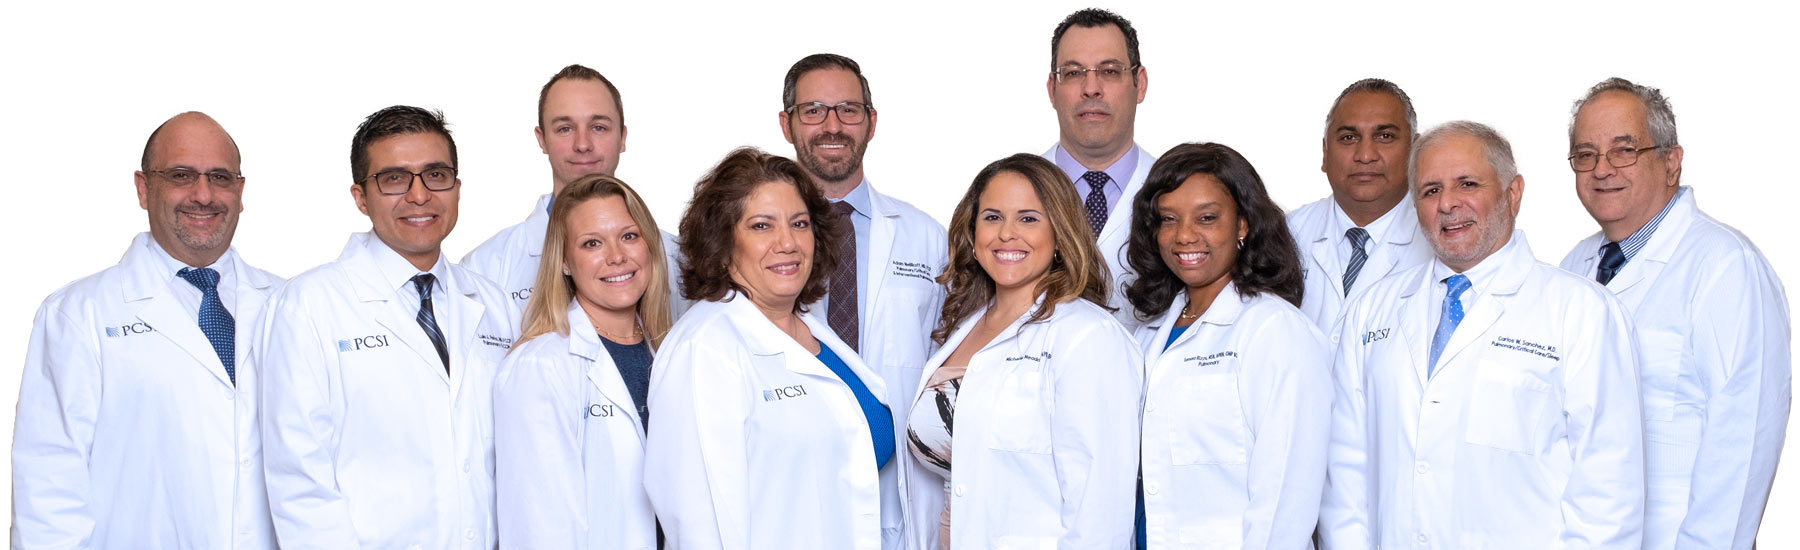 pulmonary-critical-care-sleep-disorders-institute-south-florida-pulmonary-care-img-1a